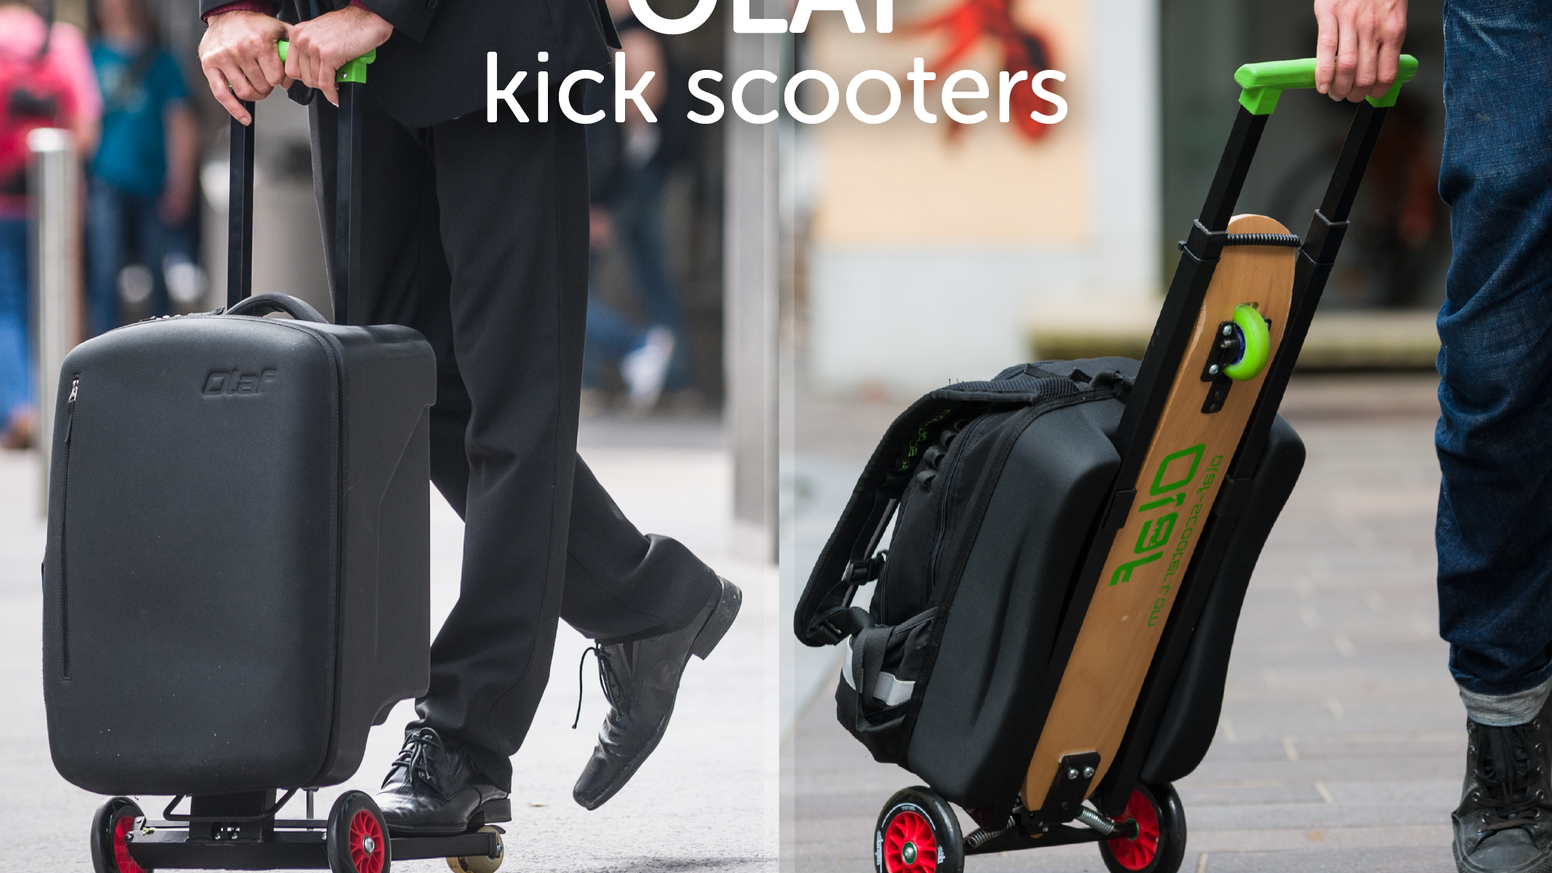 OLAF upgrades your travel experience. It's a carry-on kickscooter (3 in 1 BUSINESS) or a backpack kickscooter (4 in 1 URBAN).